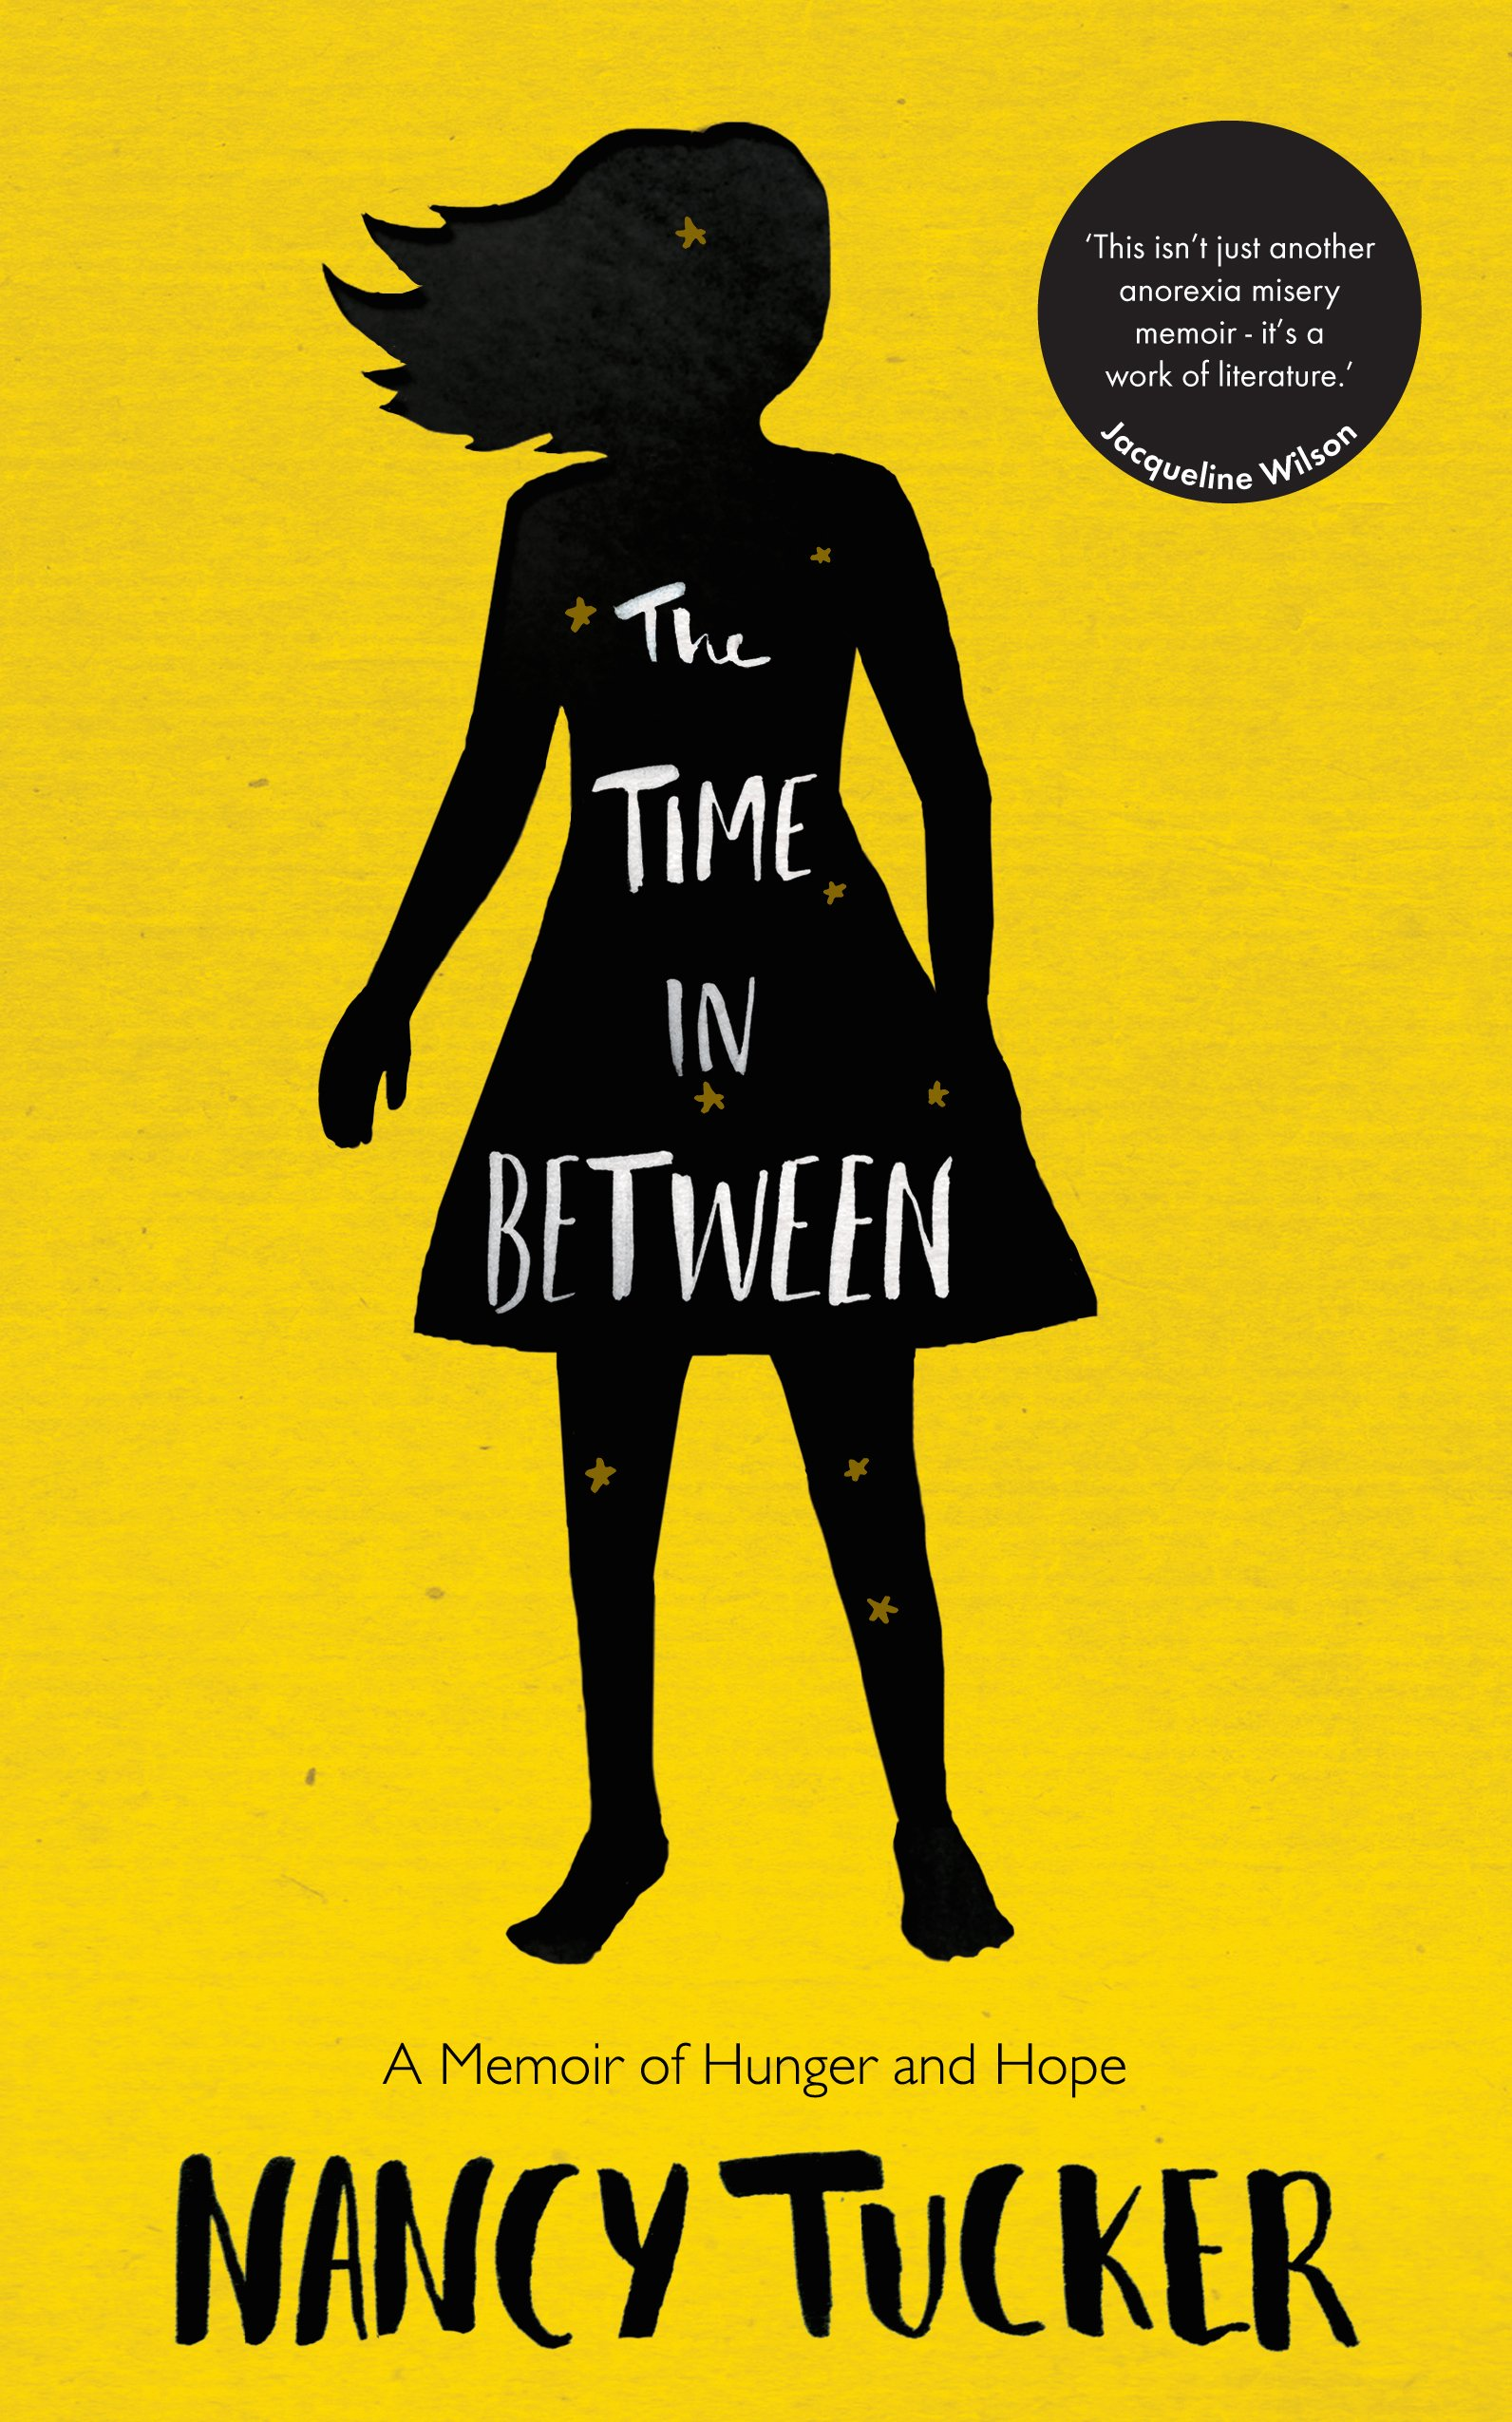 """THE TIME IN BETWEEN  Memoir, 304 pages Icon, April 2016  When Nancy Tucker was eight years old, her class had to write about what they wanted in life. She thought, and thought, and then, though she didn't know why, she wrote: """"I want to be thin.""""  Over the next twelve years, she developed anorexia nervosa, was hospitalized, and finally swung the other way towards bulimia nervosa. She left school, rejoined school; went in and out of therapy; ebbed in and out of life. From the bleak reality of a body breaking down to the electric mental highs of starvation, hers has been a life held in thrall by food.  Told with remarkable insight, dark humor, and acute intelligence, THE TIME IN BETWEEN is a profound, important window into the workings of an unquiet mind—a Wasted for the twenty-first century."""